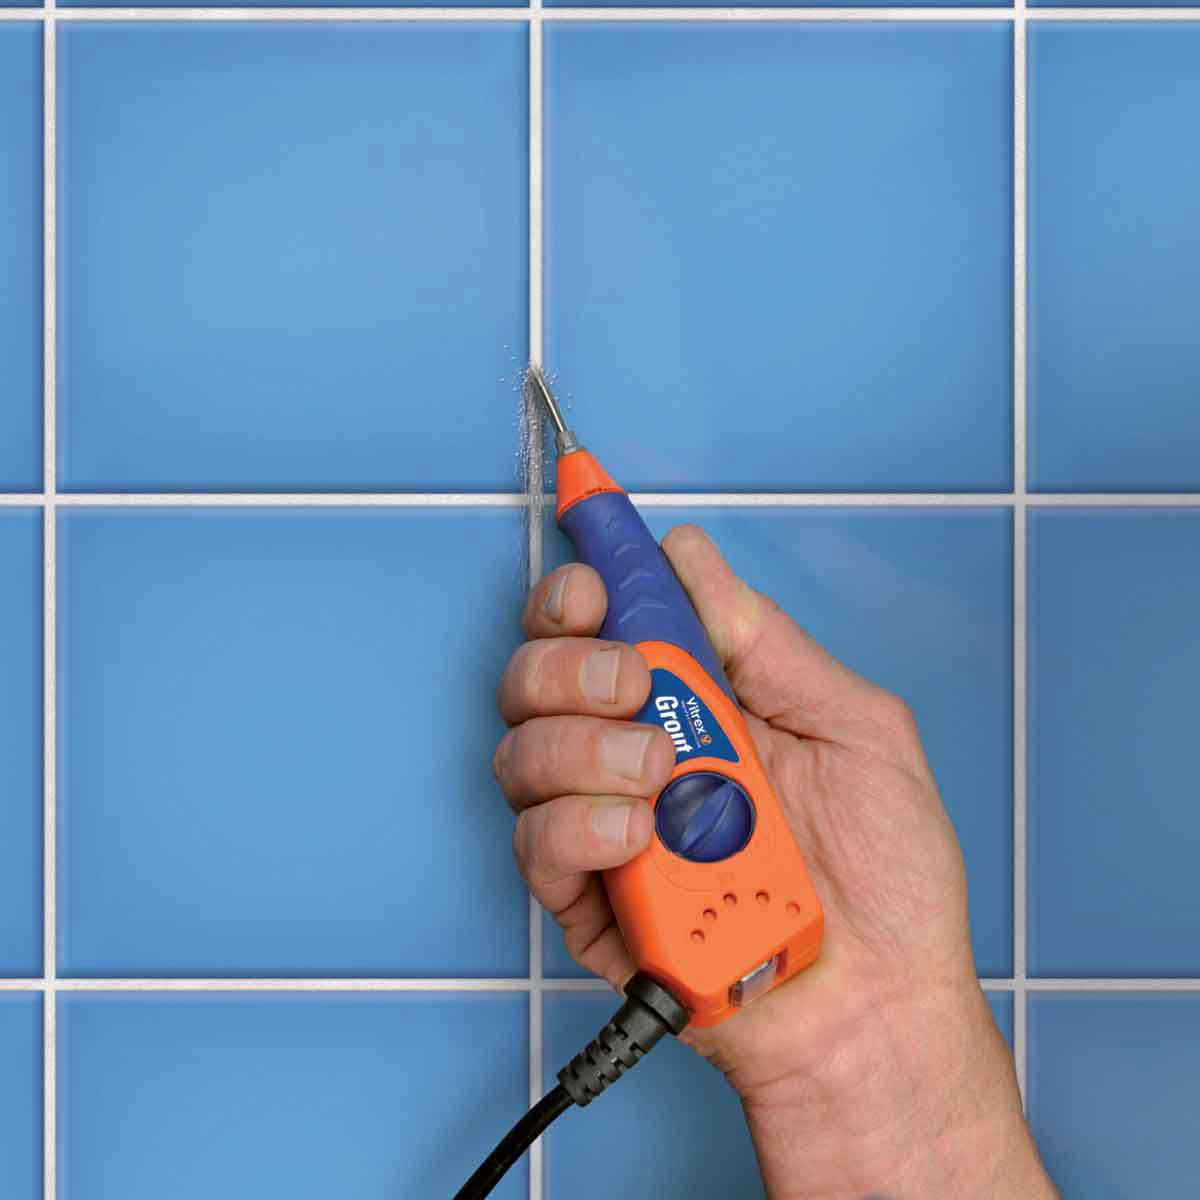 Vitrex Grout Removal Tool action